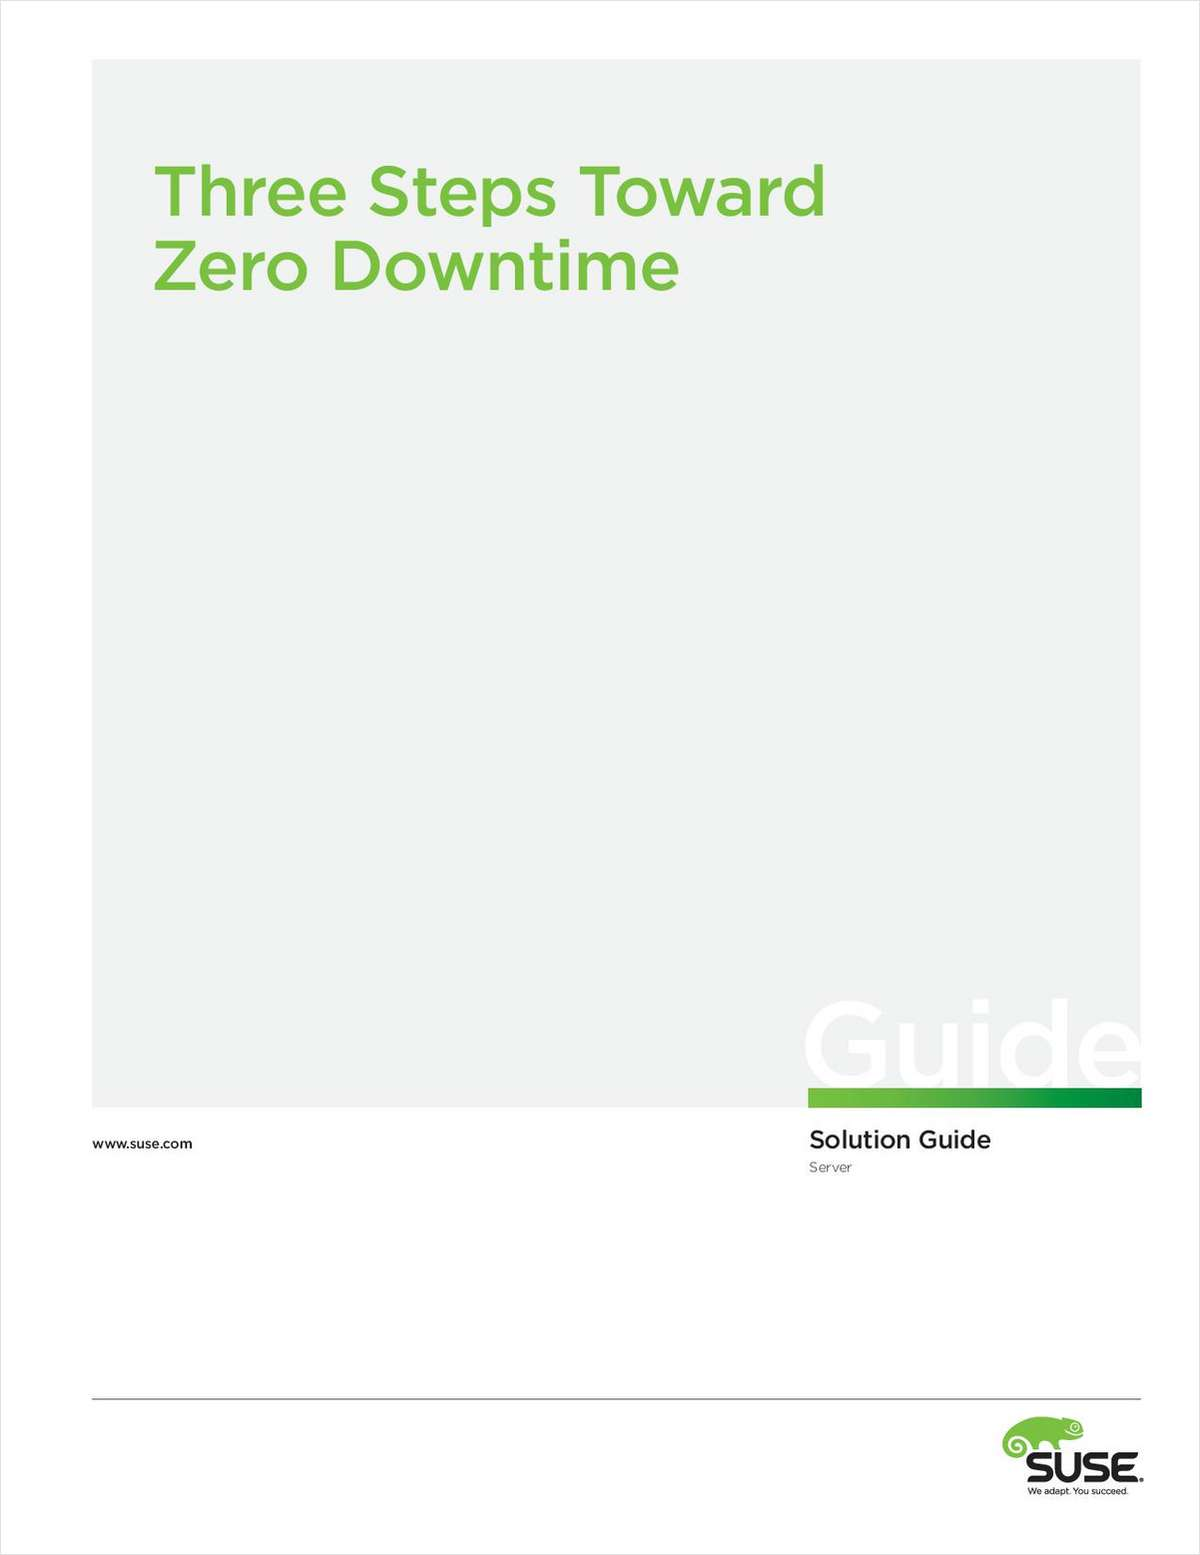 The Three Critical Steps to Achieve Zero Downtime